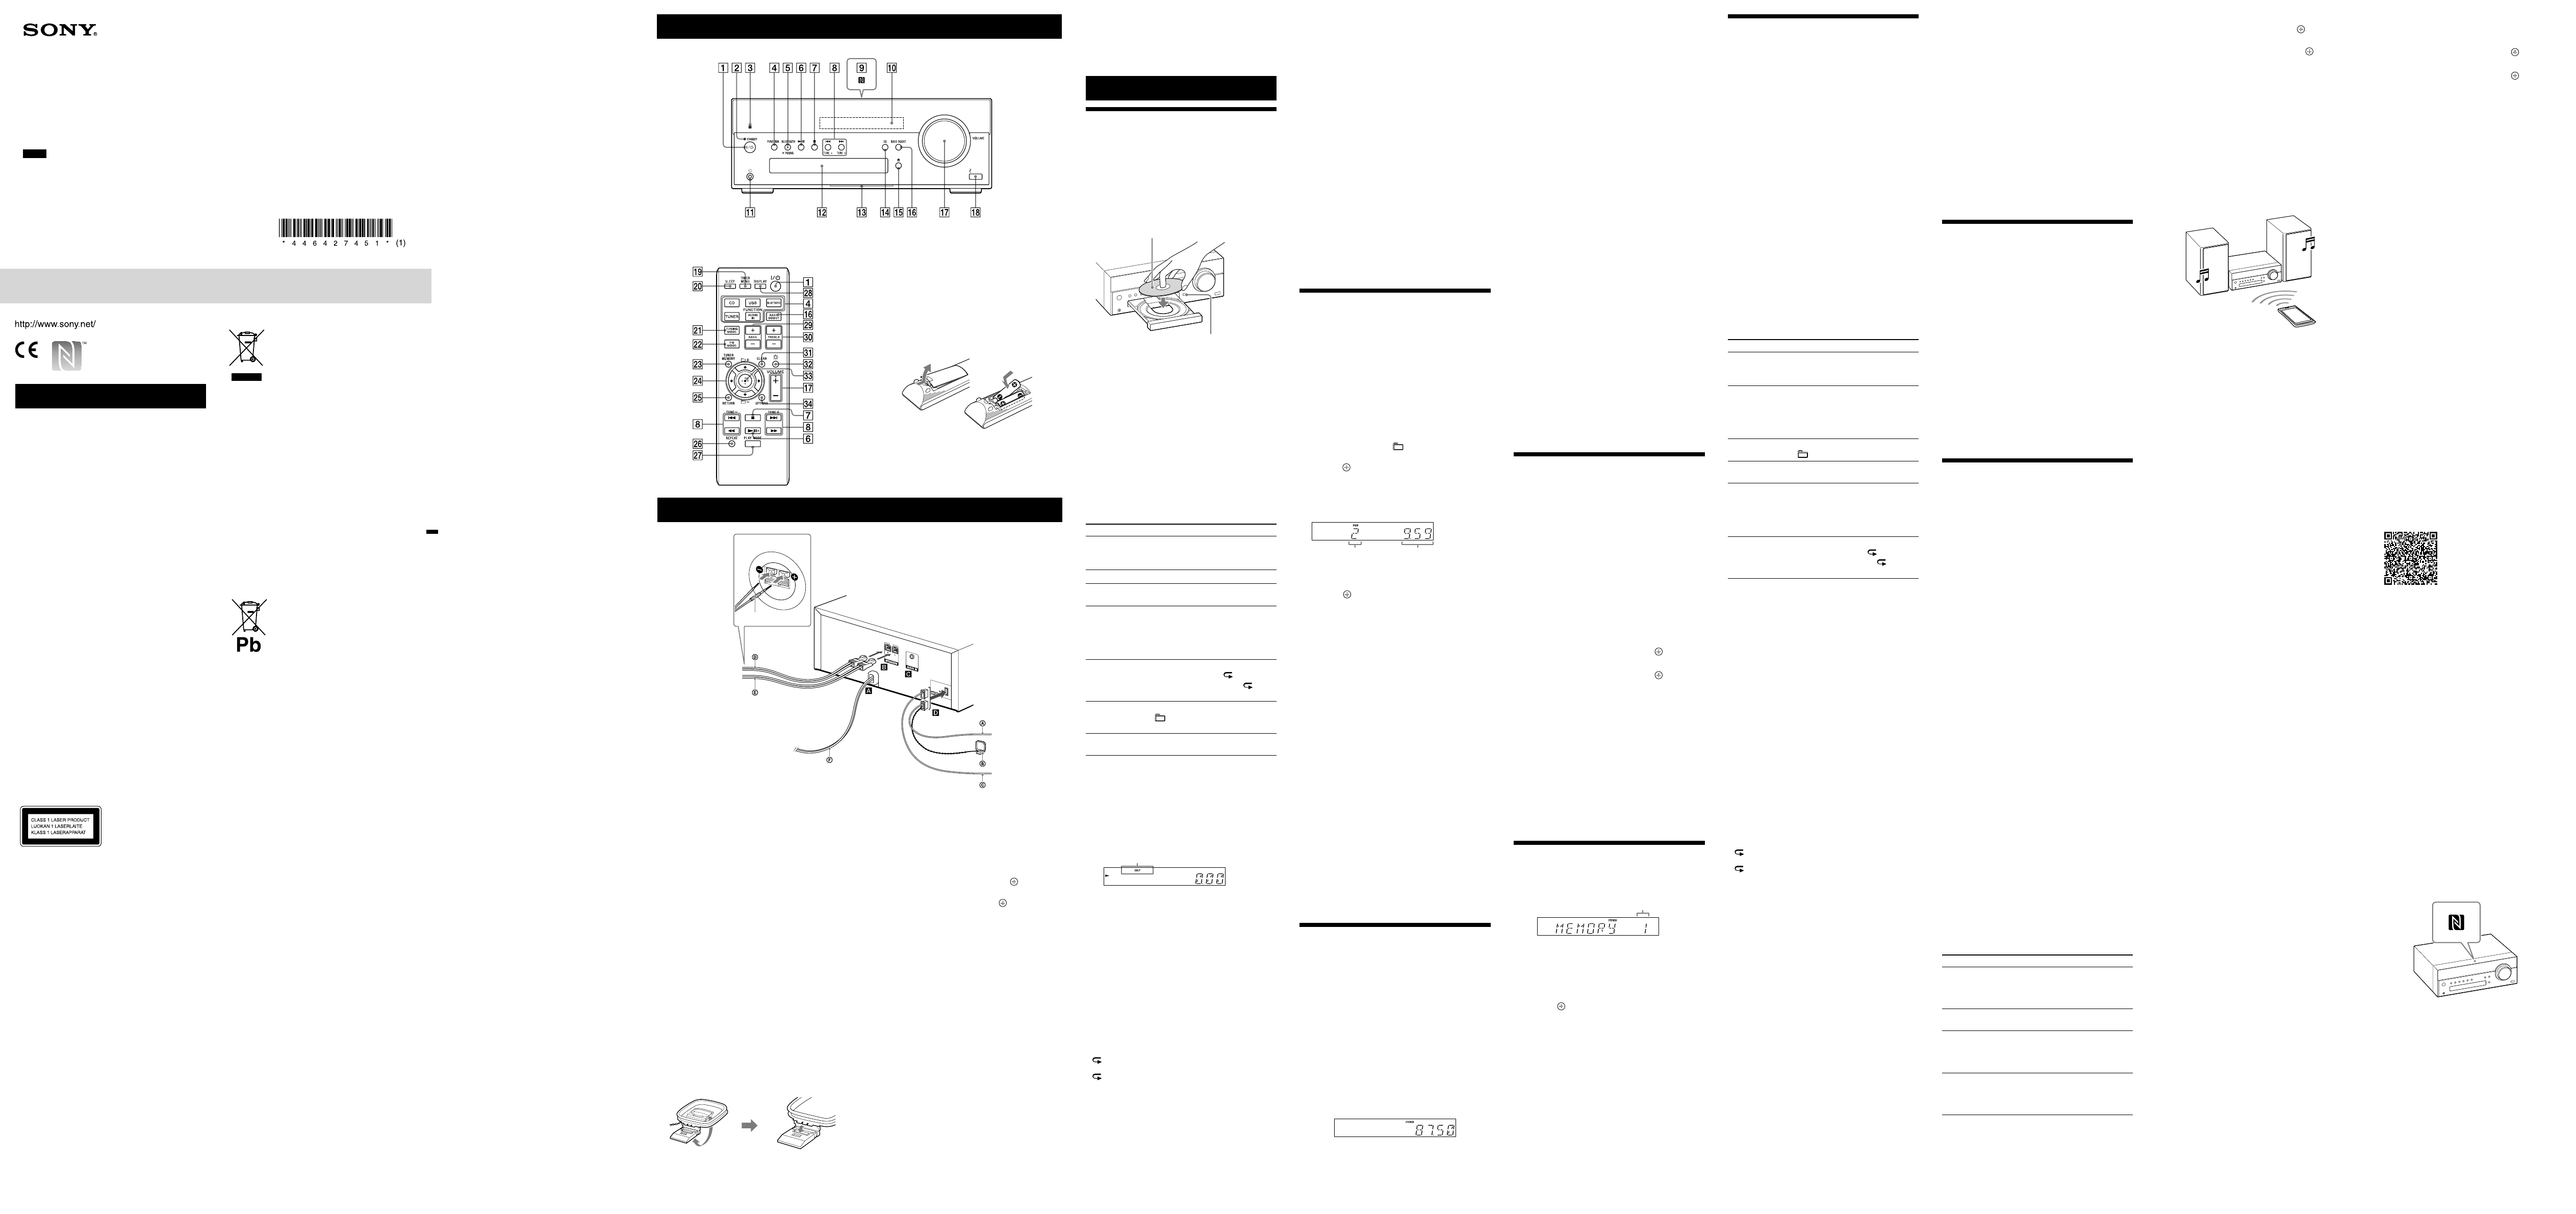 Manual Sony CMT-SBT100 (page 1 of 2) (Dutch)